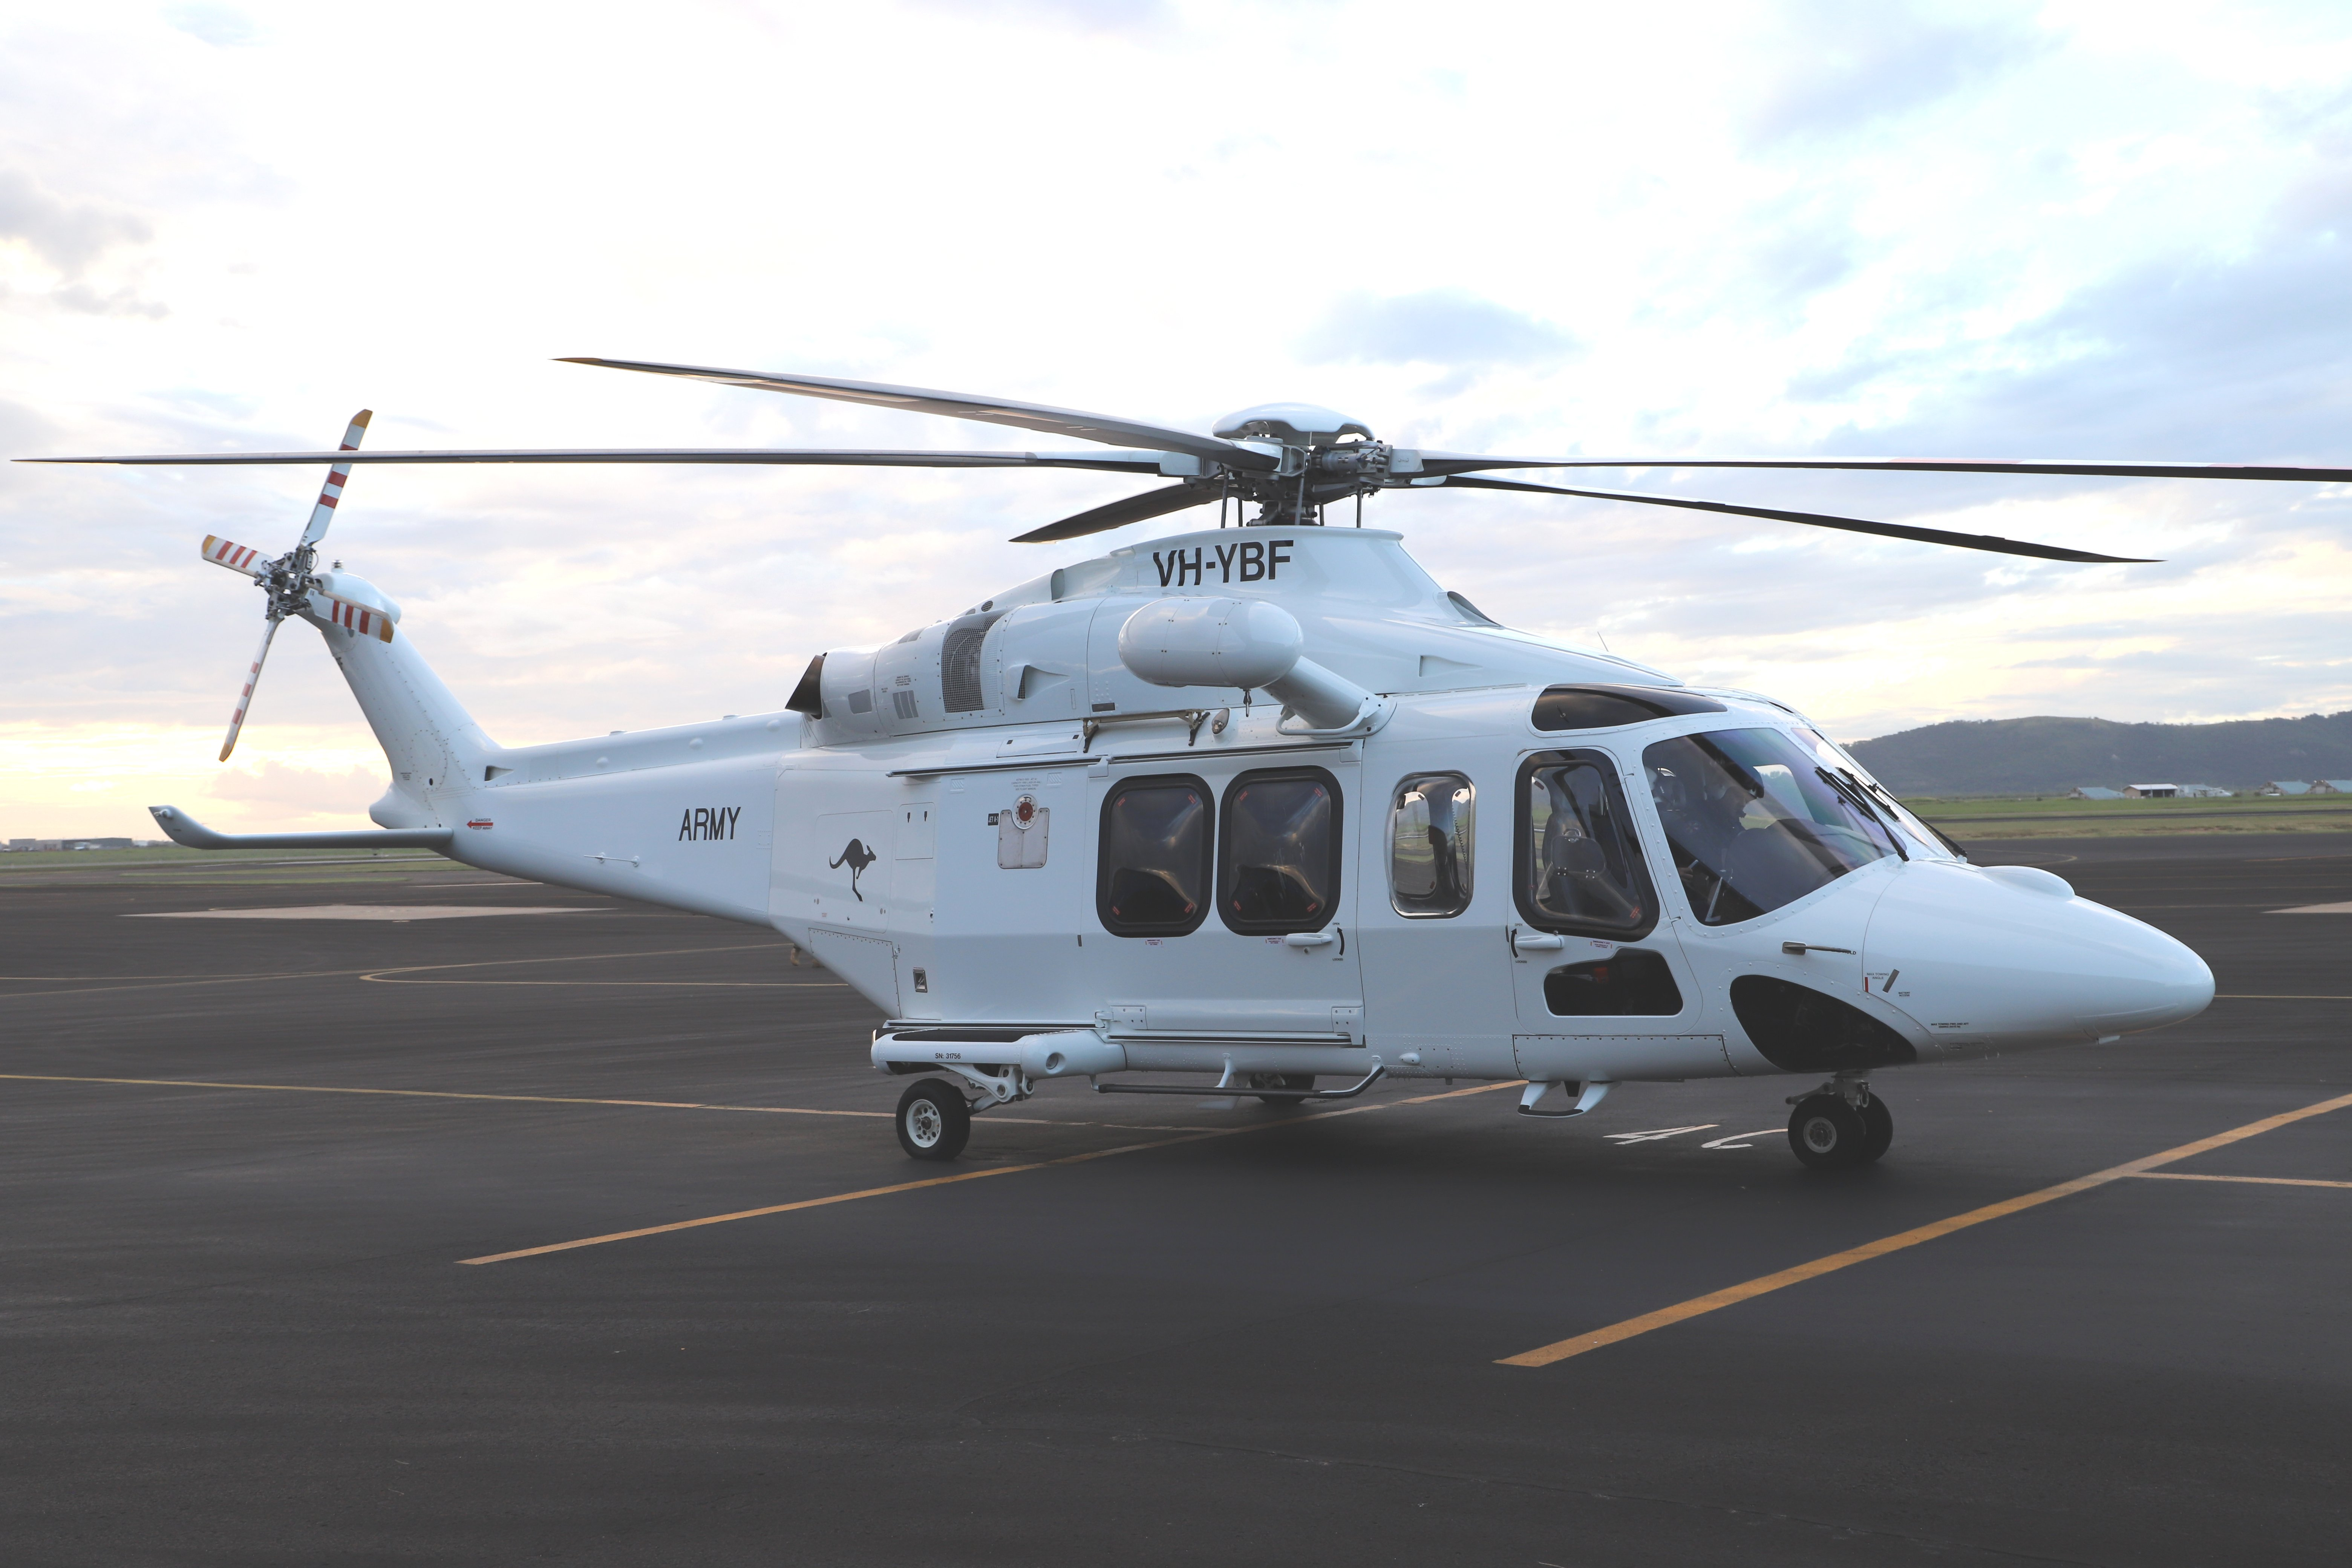 AW139 [Commonwealth of Australia-Department of Defence/Capt Bethany Gallagher]